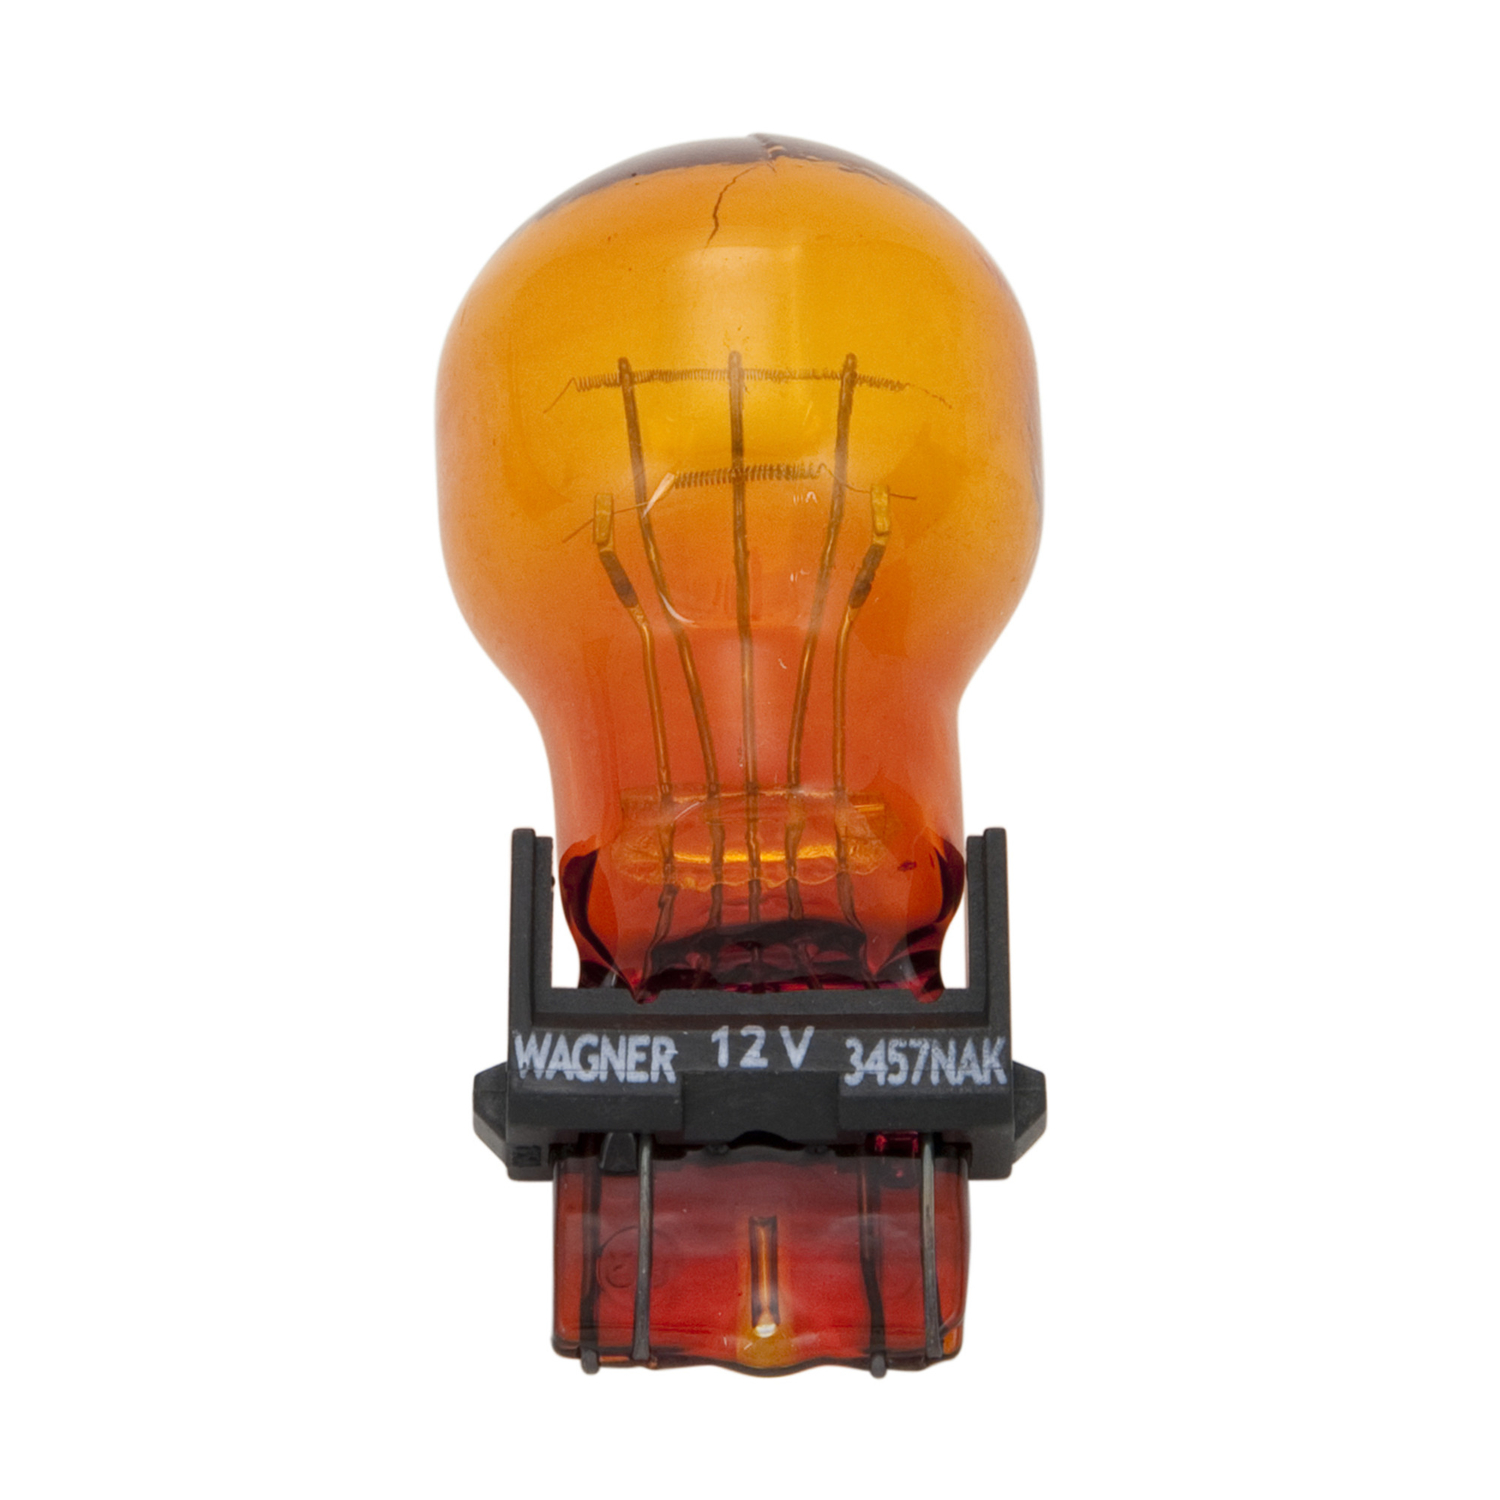 WAGNER LIGHTING - Turn Signal Light Bulb - WLP 3457NALL